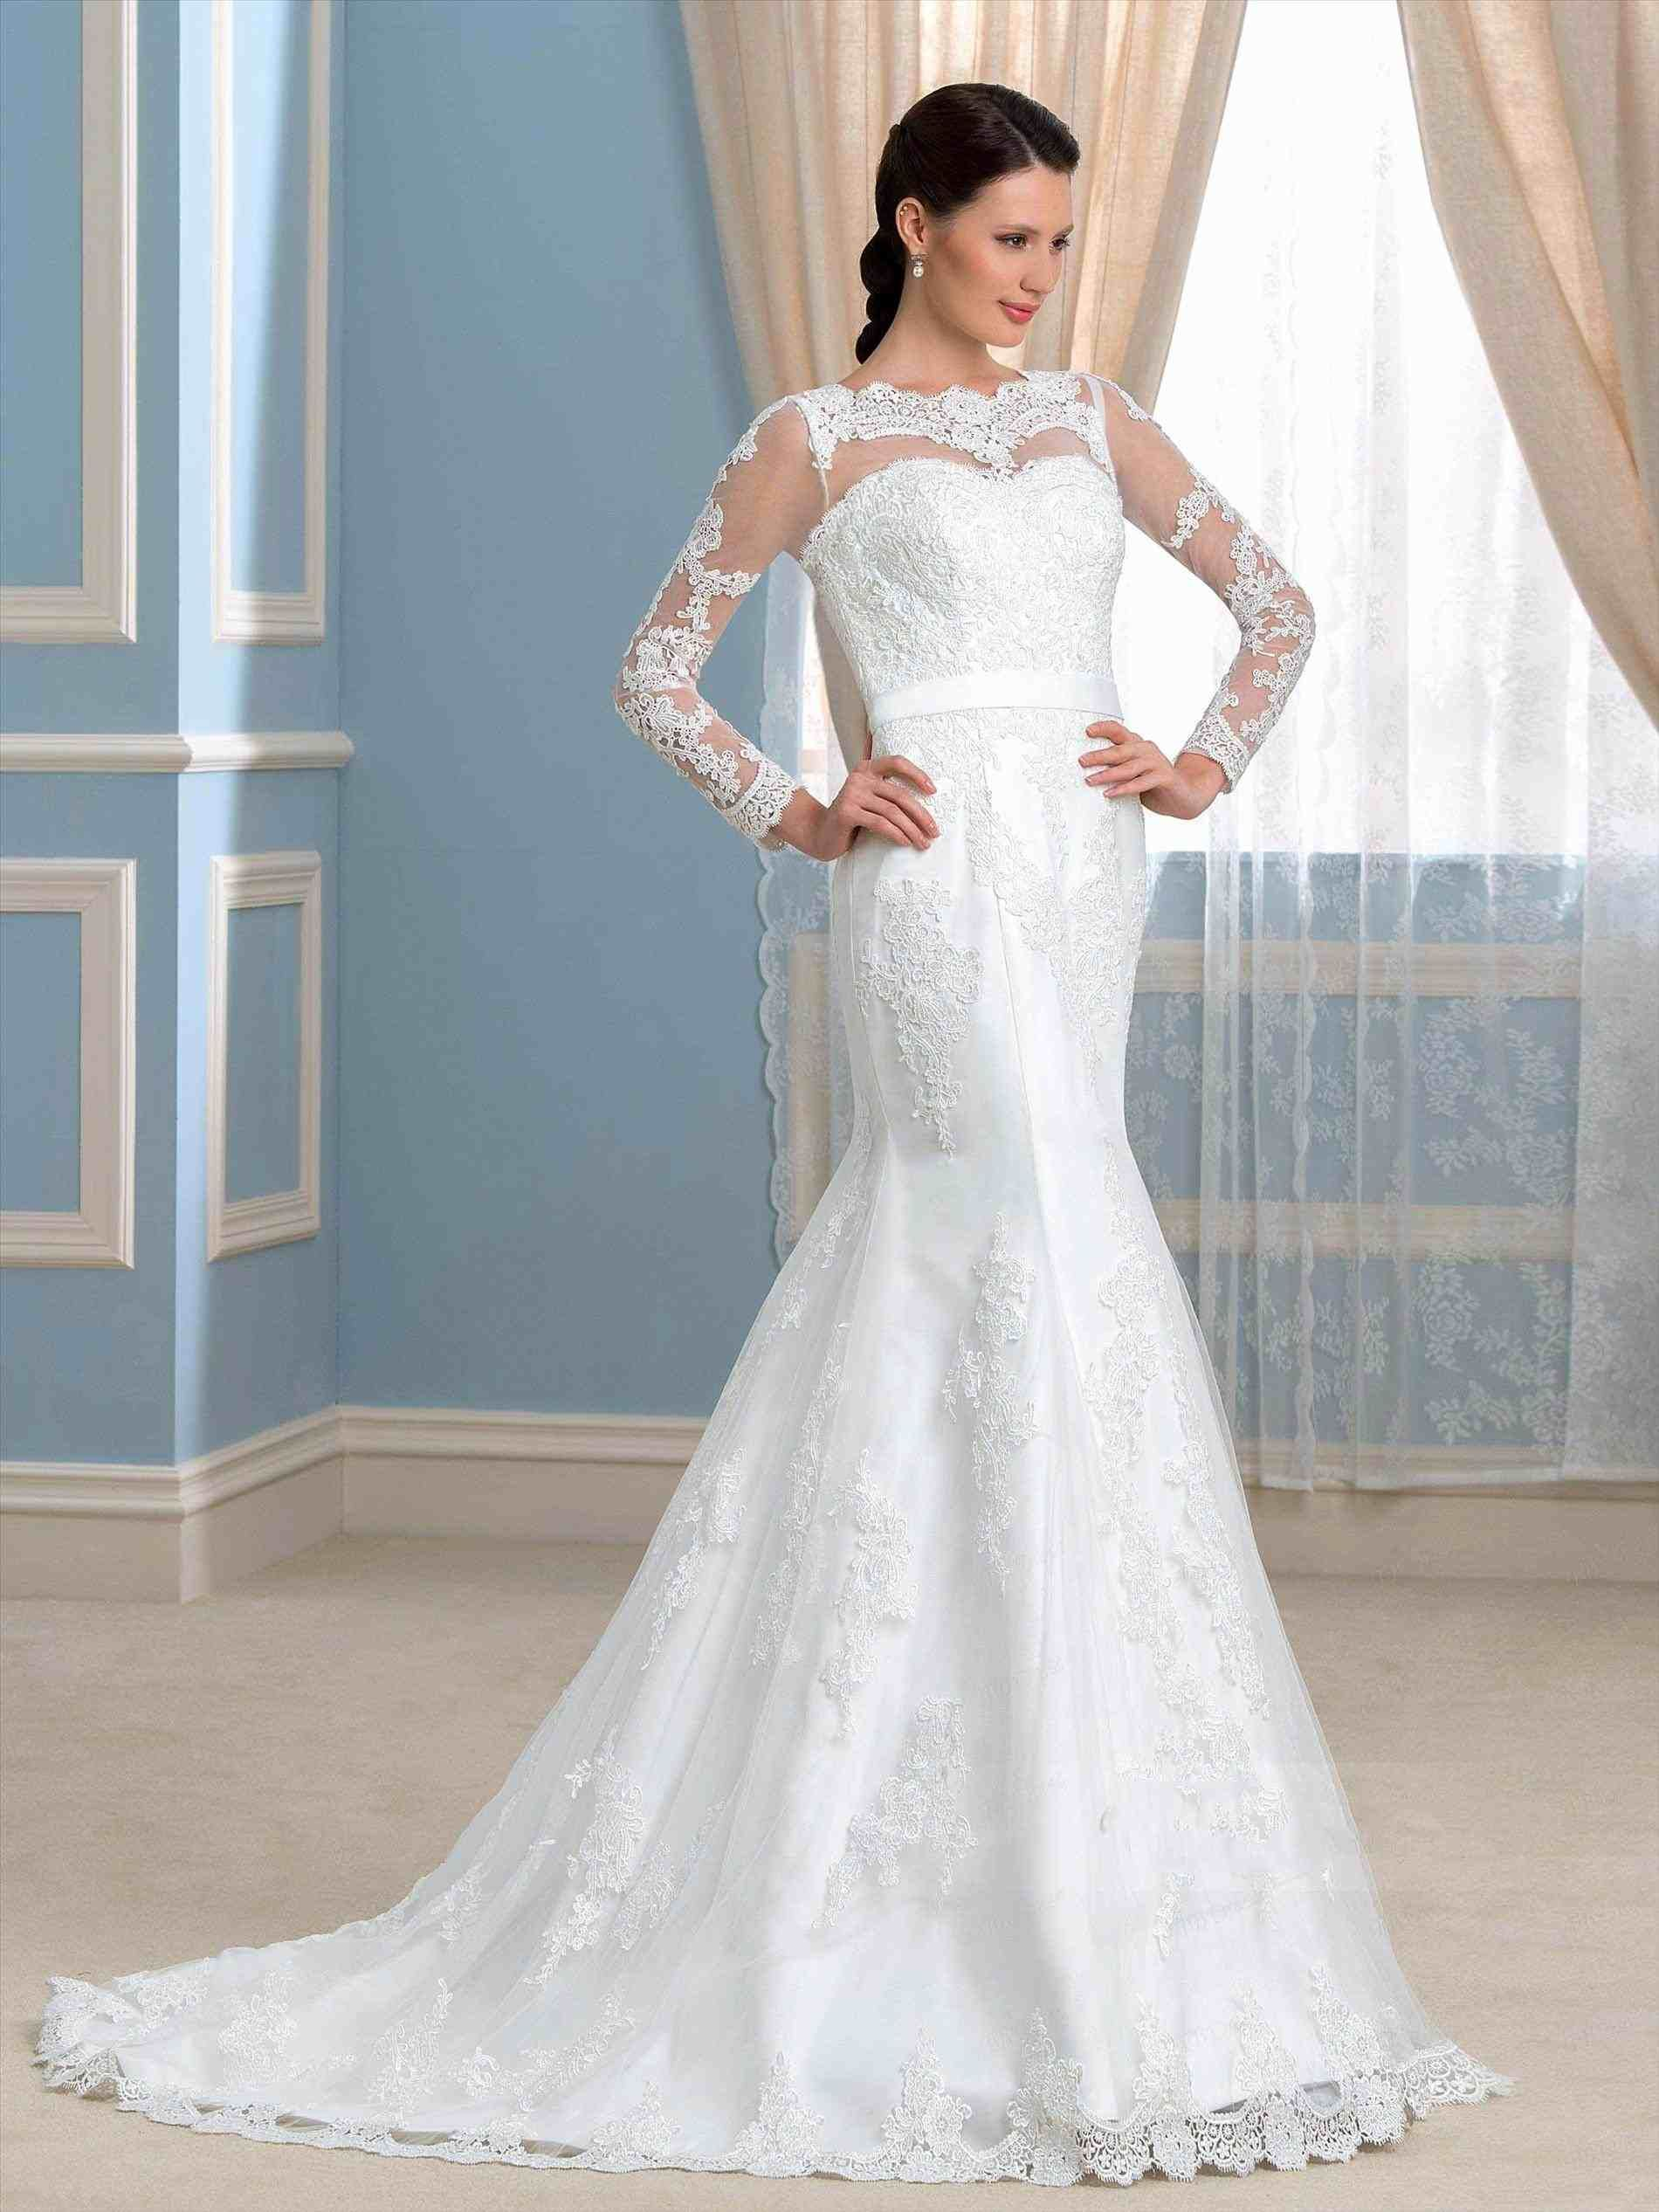 Low back lace mermaid wedding dress  lace mermaid wedding dress low back  Weddings  Pinterest  Lace